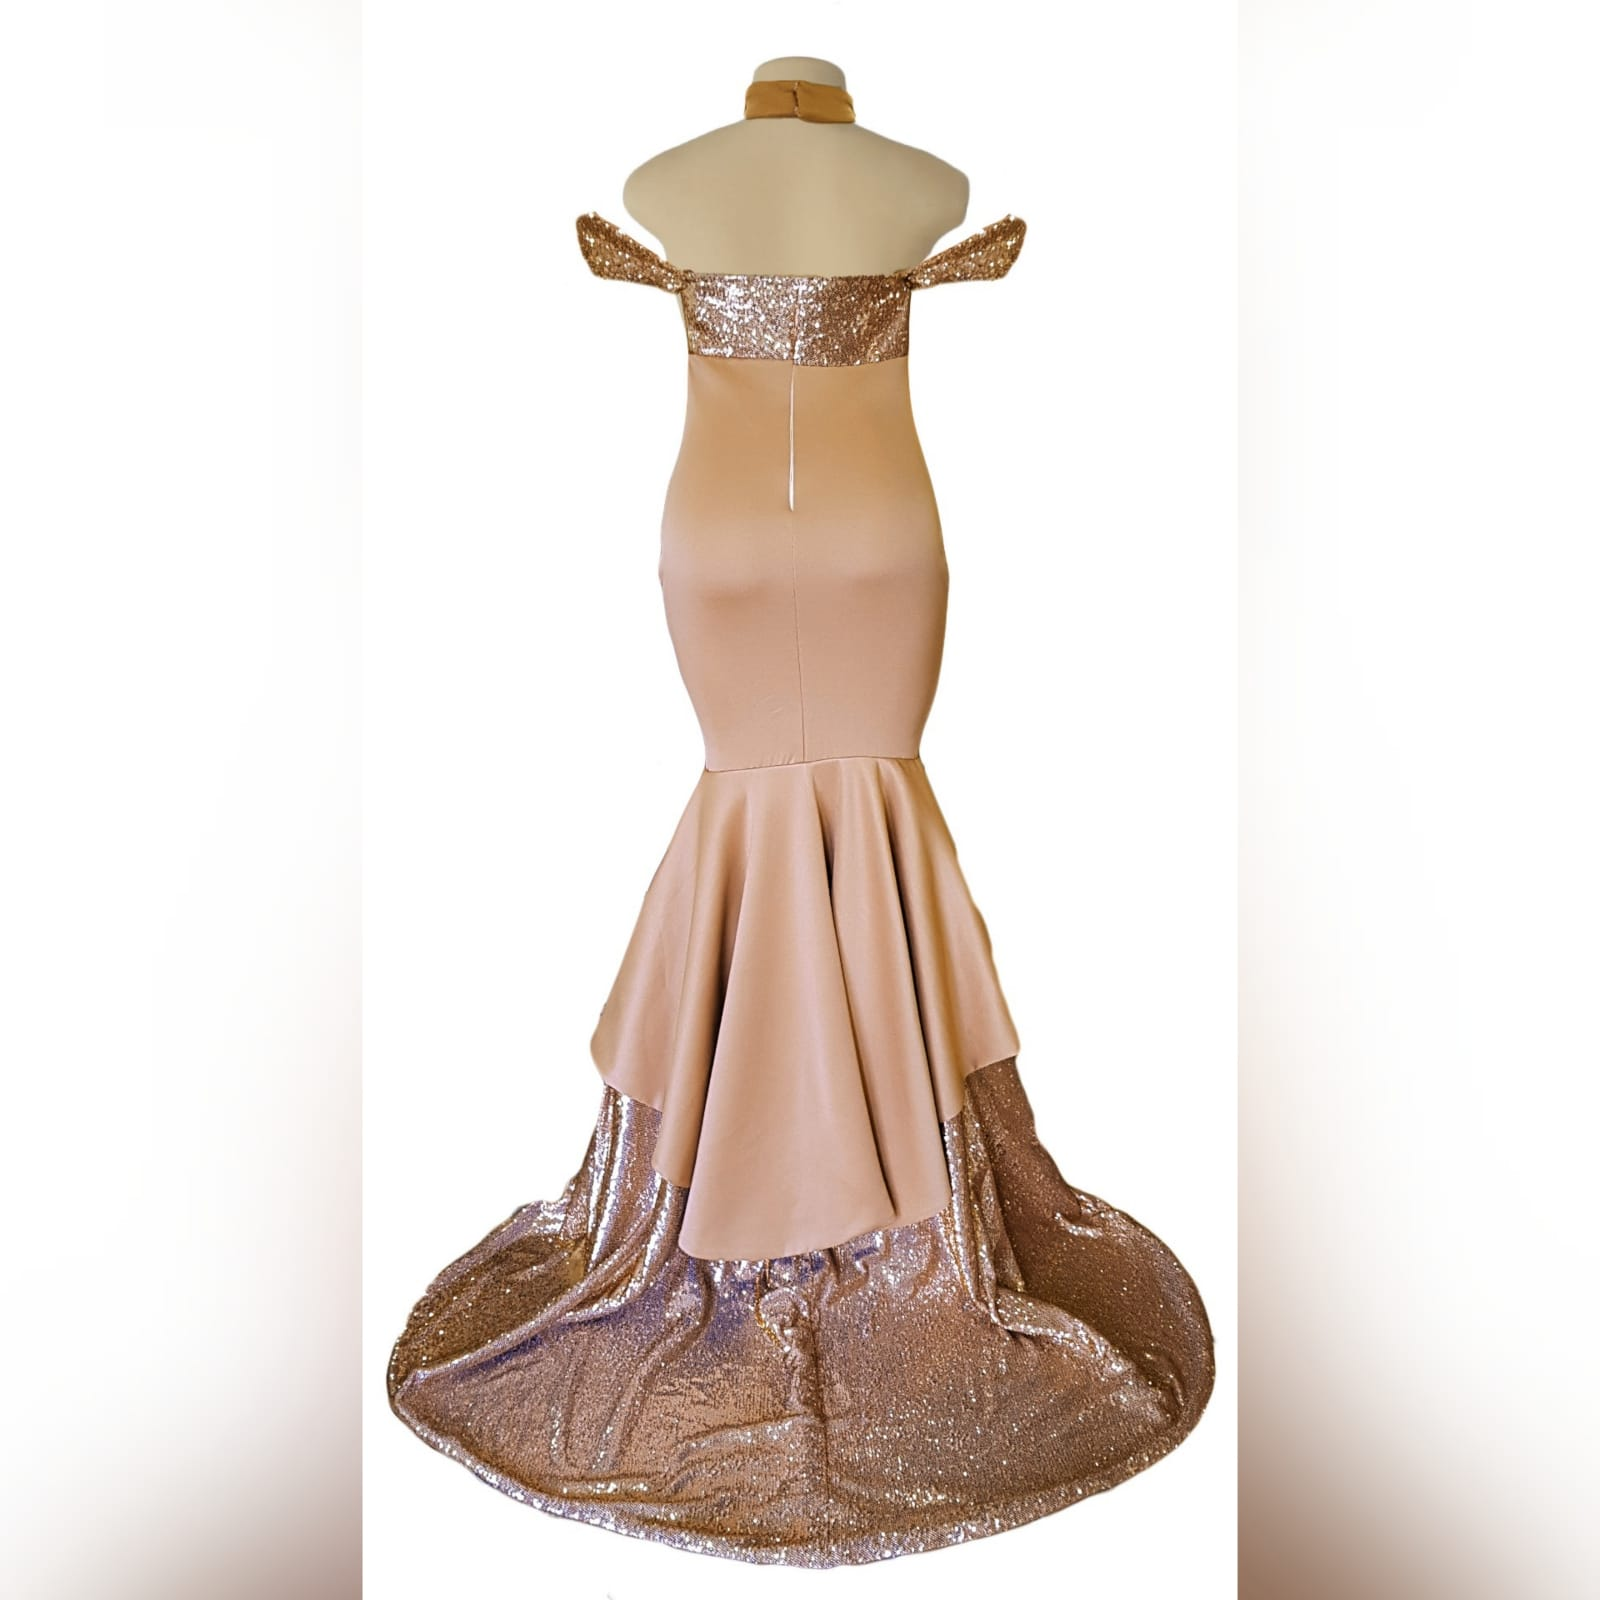 Rose gold 2 tone mermaid prom dress 6 rose gold 2 tone mermaid prom dress, off-shoulder dress with a sweetheart neckline and off-shoulder short sleeves. Double layer from knee down, with sequins, creating a train with a slit int the front middle. Comes with a matching choker.